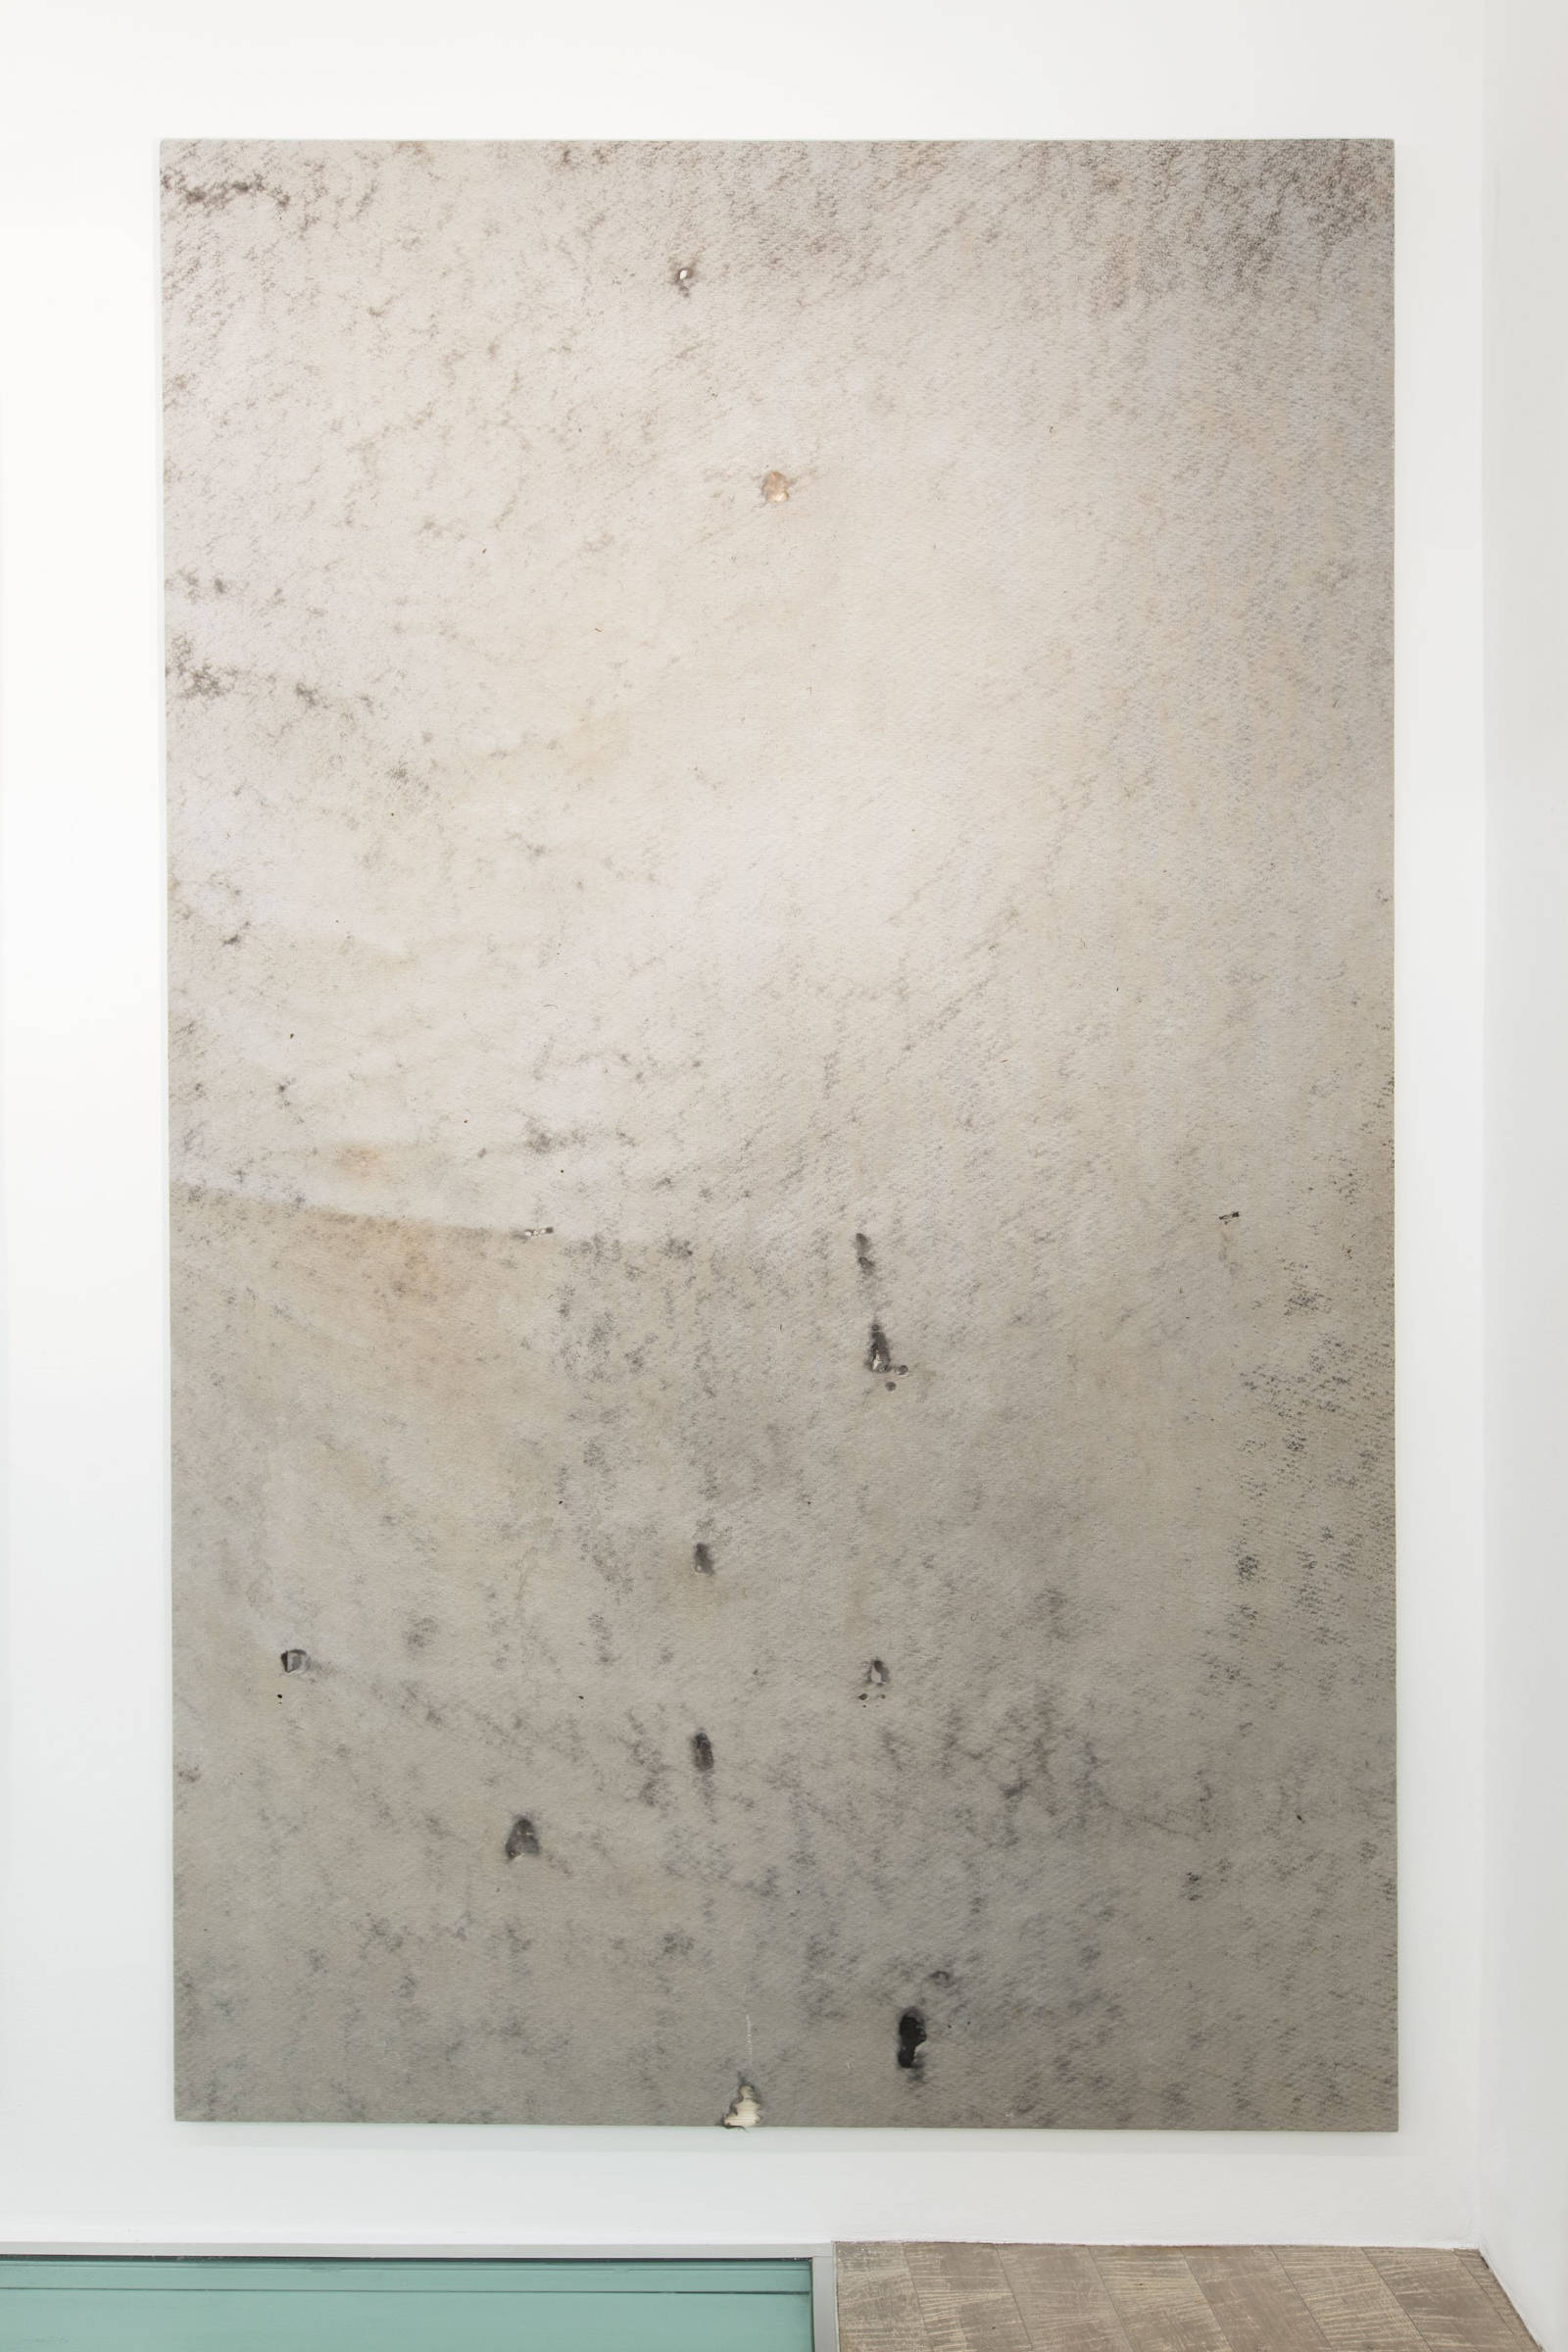 24_Tiziano Martini, 2015, untitled, soil, dirt, rust, plant debris and vinilic on non-woven fabric mounted on wooden stretcher bars, installation view,  photo Andrea Rossetti